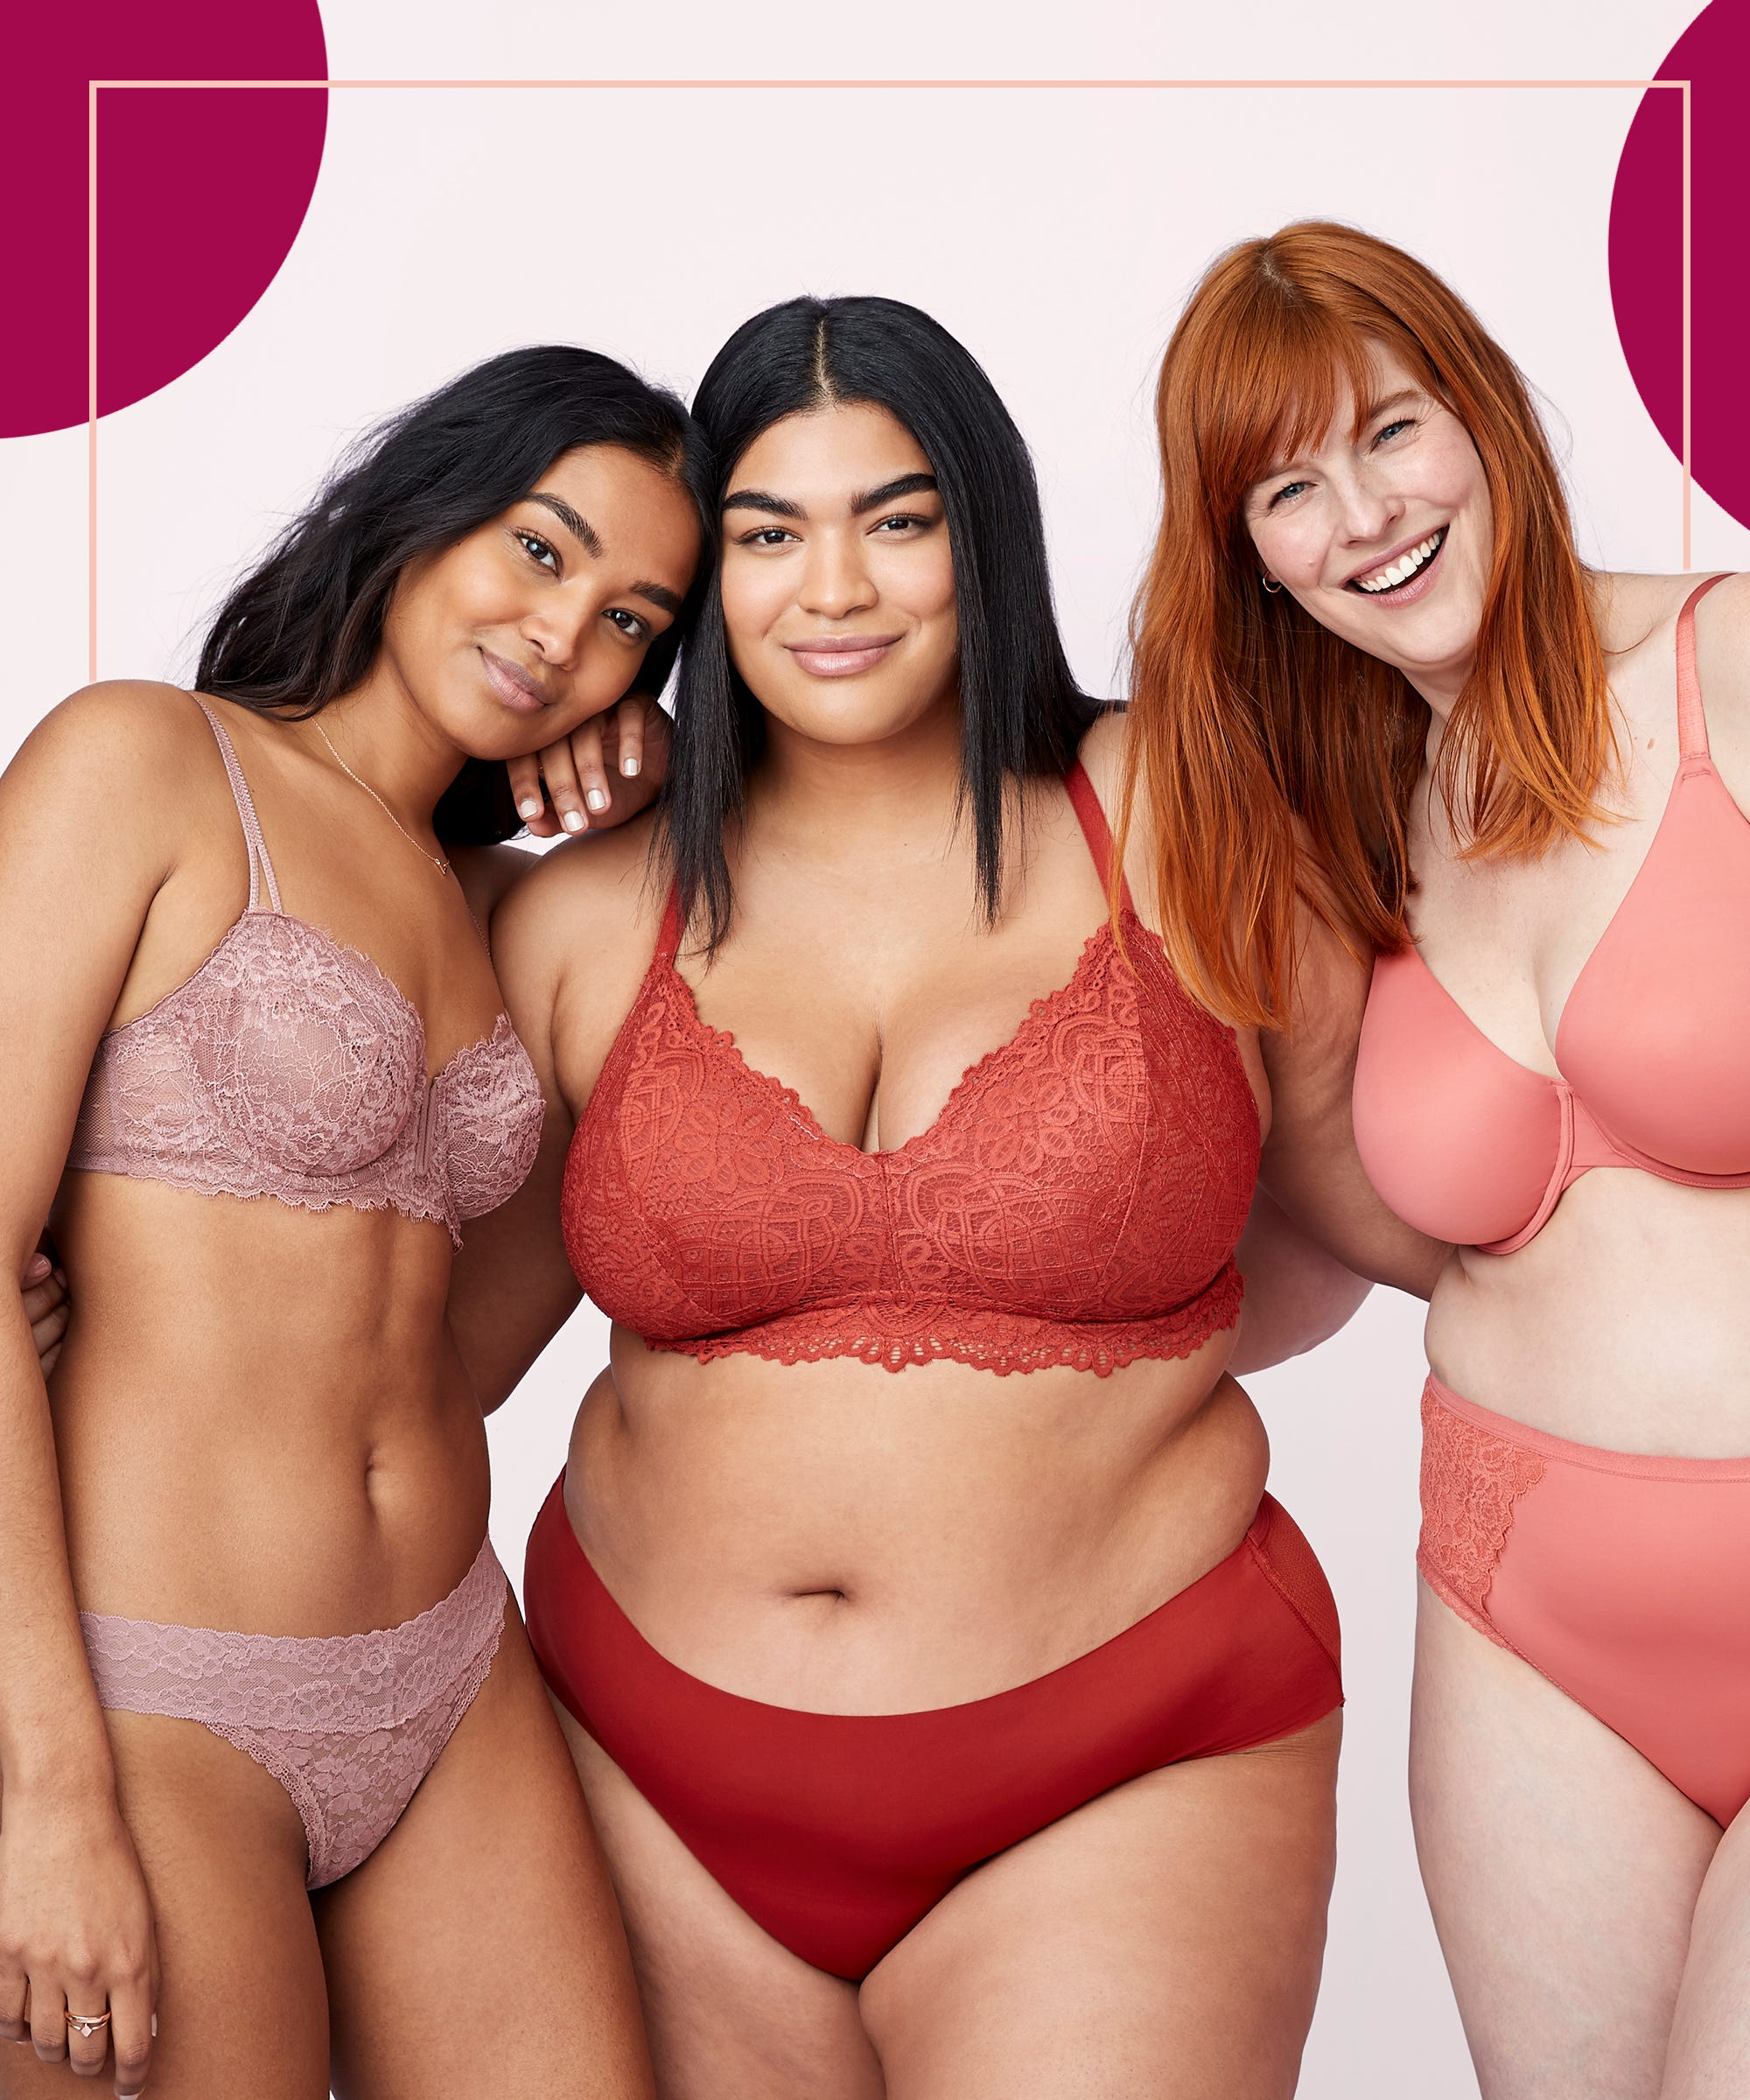 Target Launched Not One, Not Two, But Three New Lingerie & Sleepwear Brands — & They're All Available Now